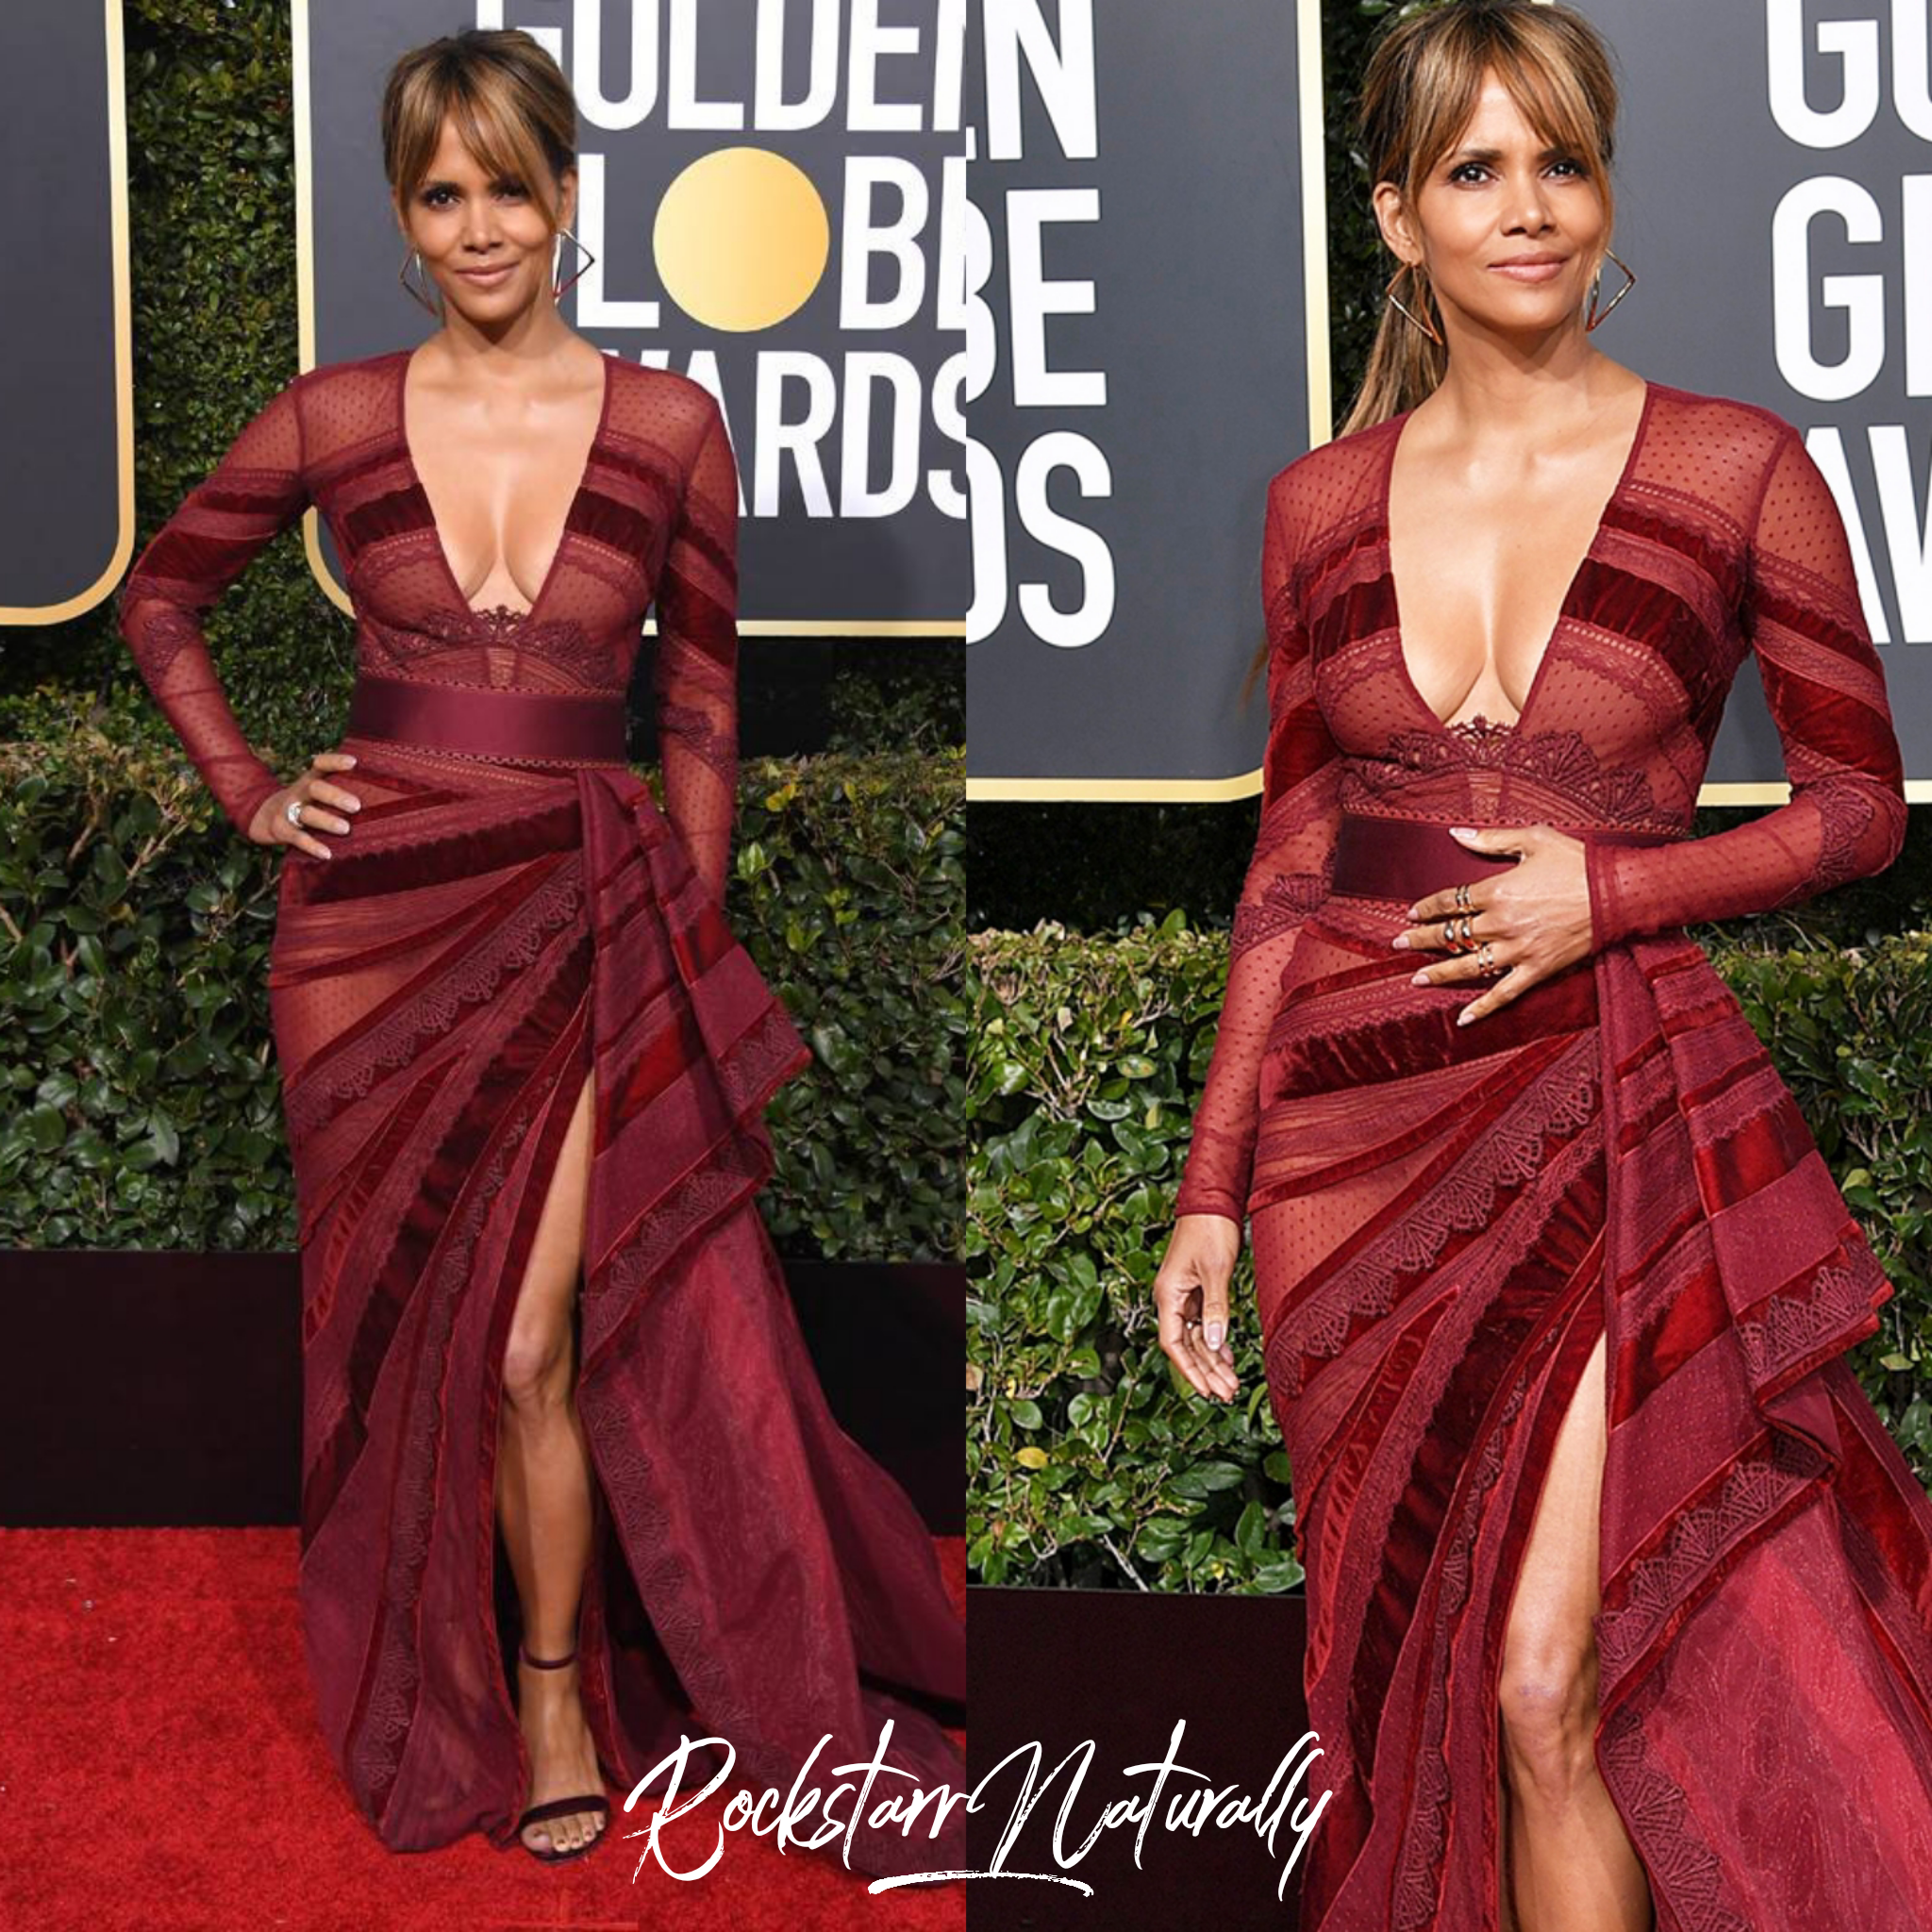 - Halle Berry in Zuhair Murad Couture